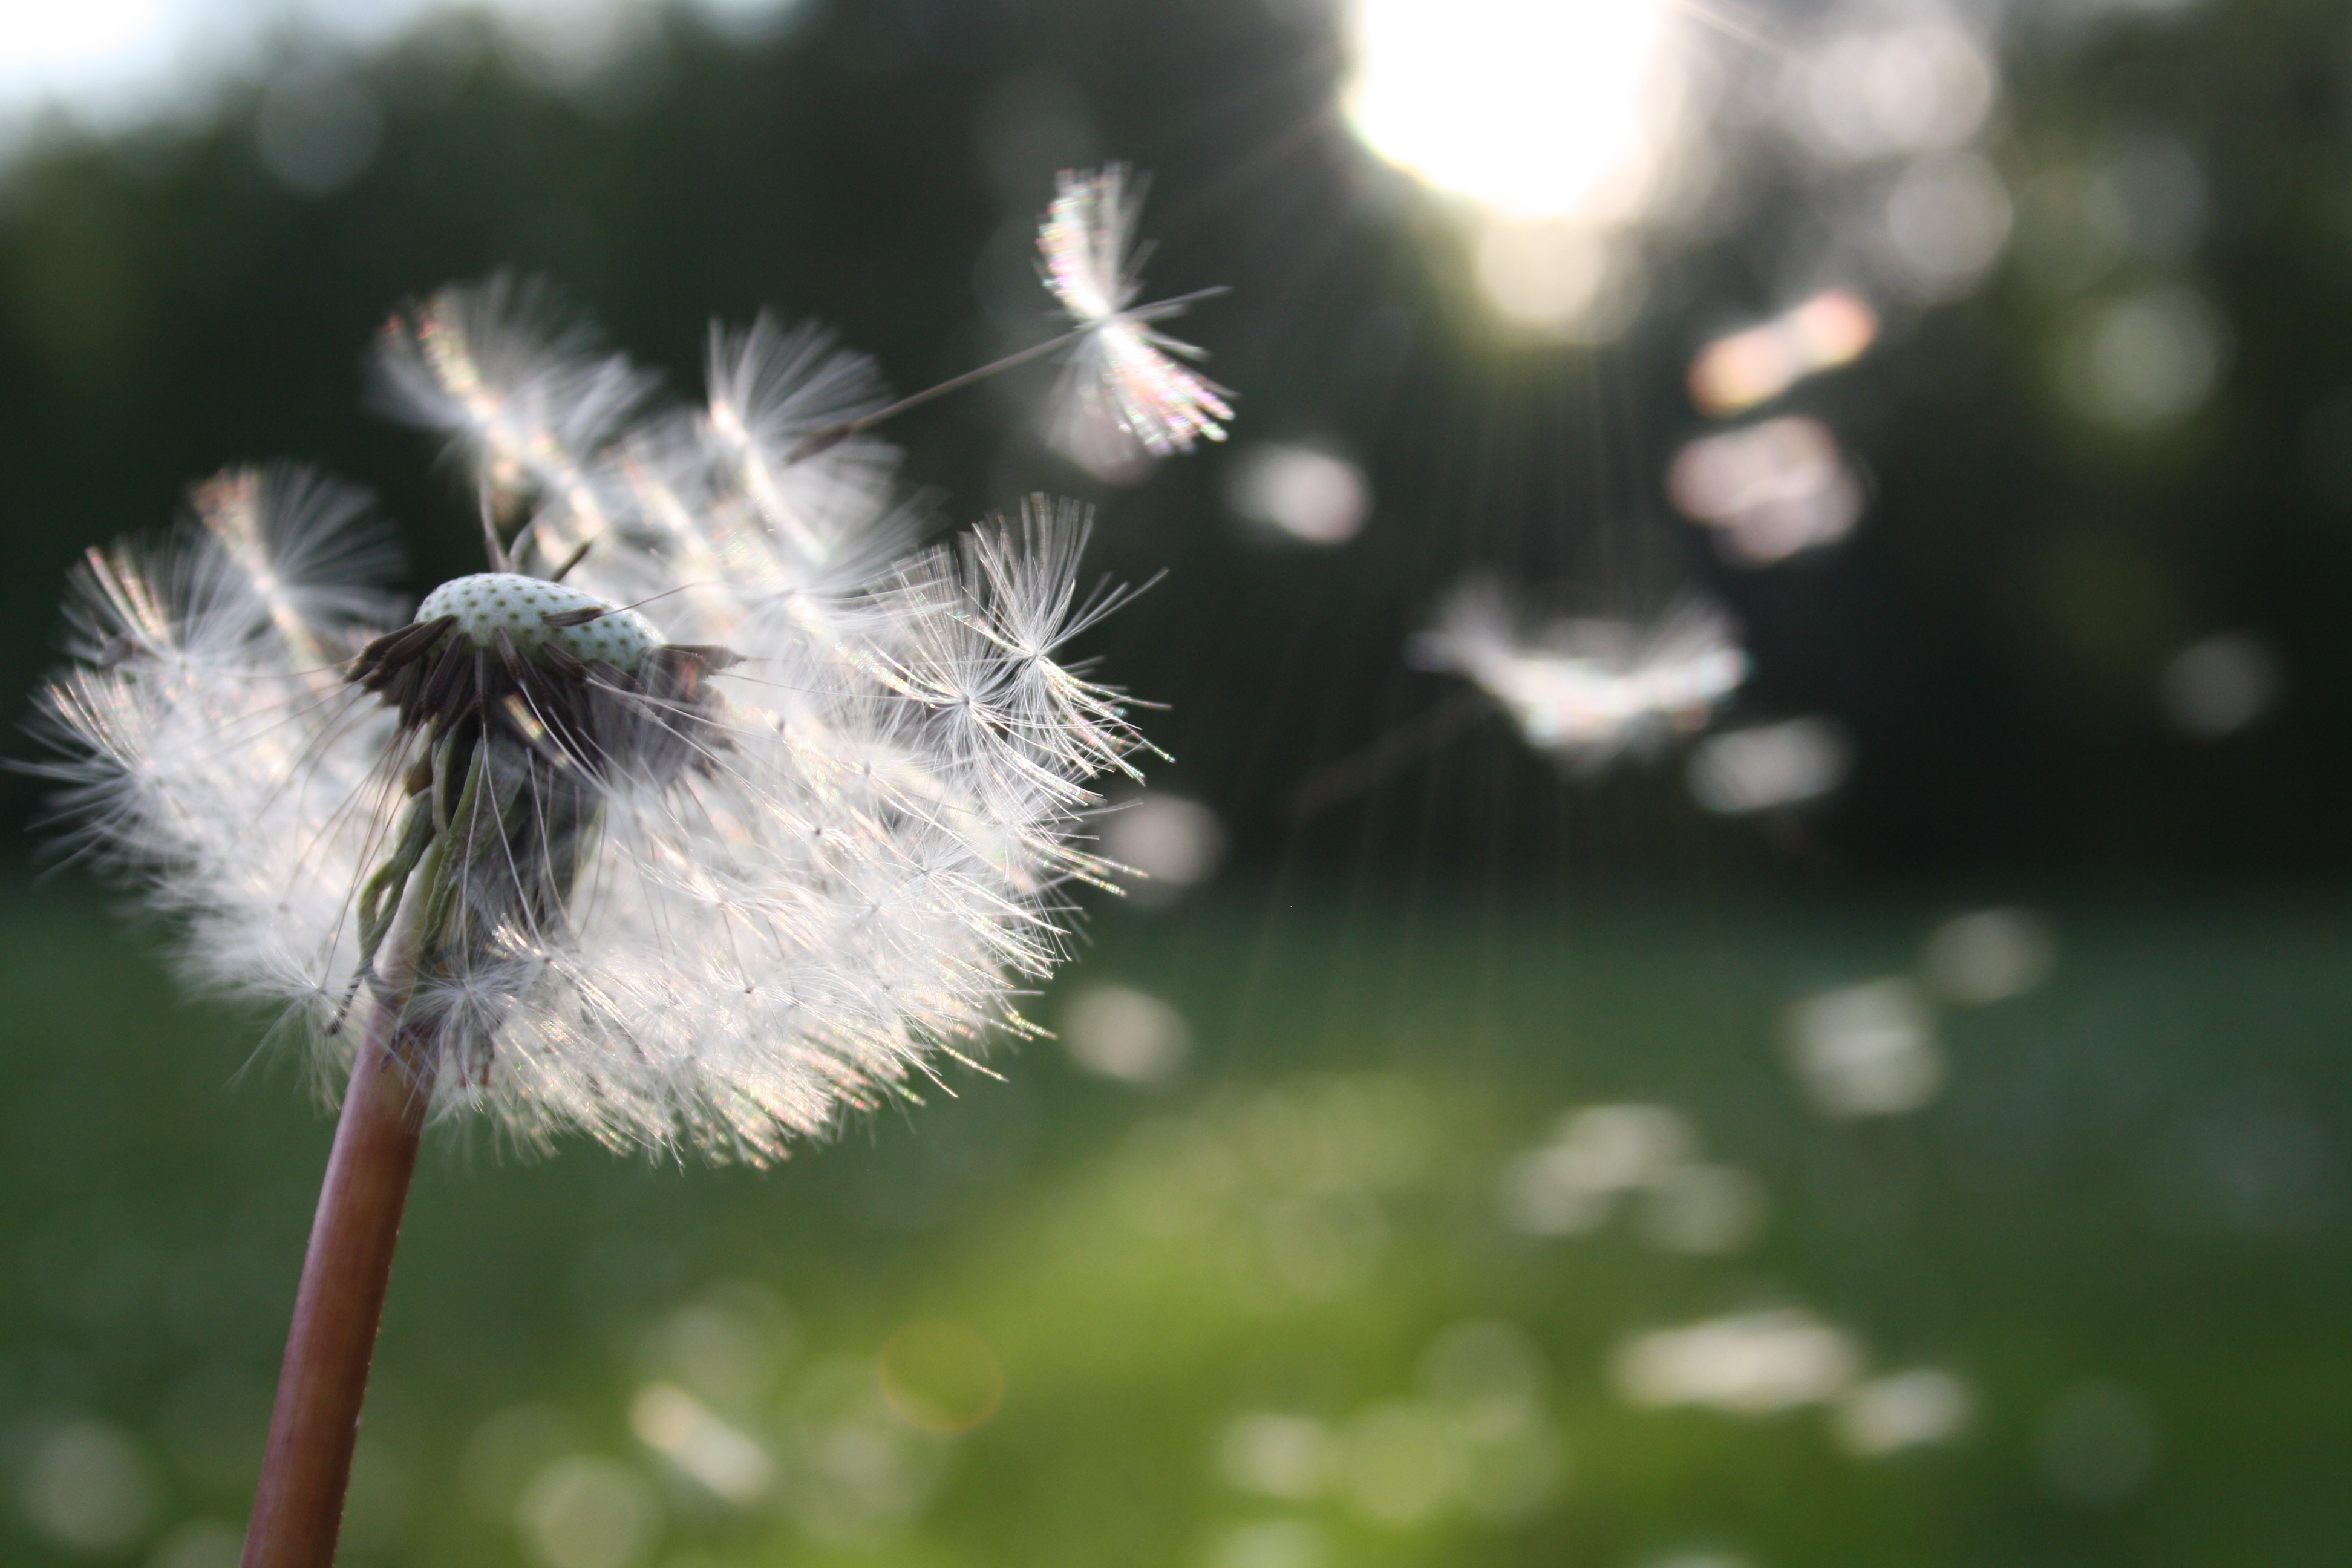 Pollen can cause spring allergies